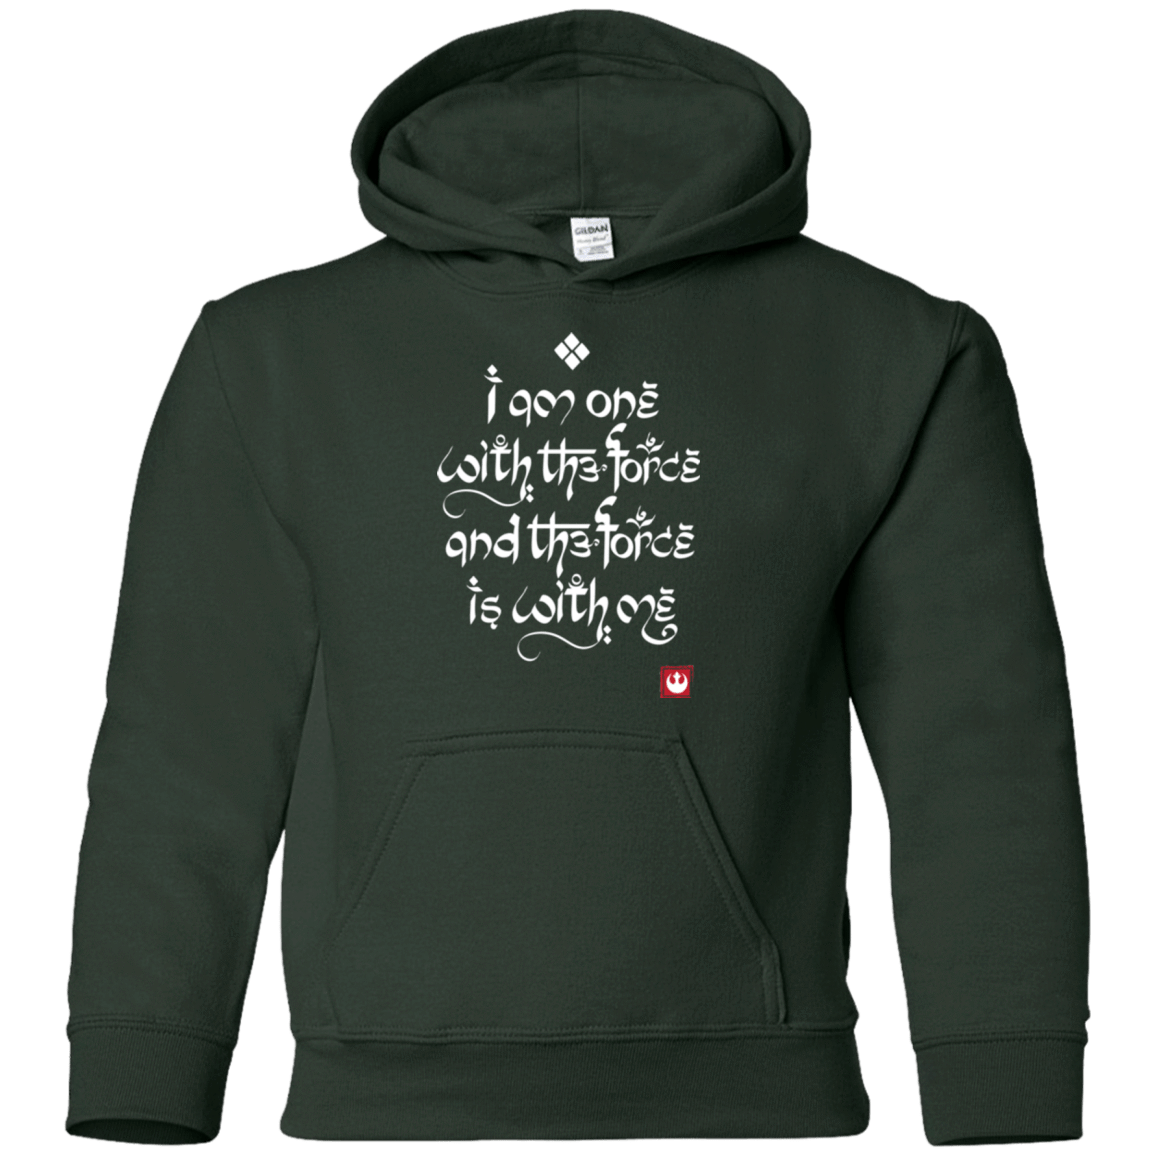 Sweatshirts Forest Green / YS Force Mantra White Youth Hoodie